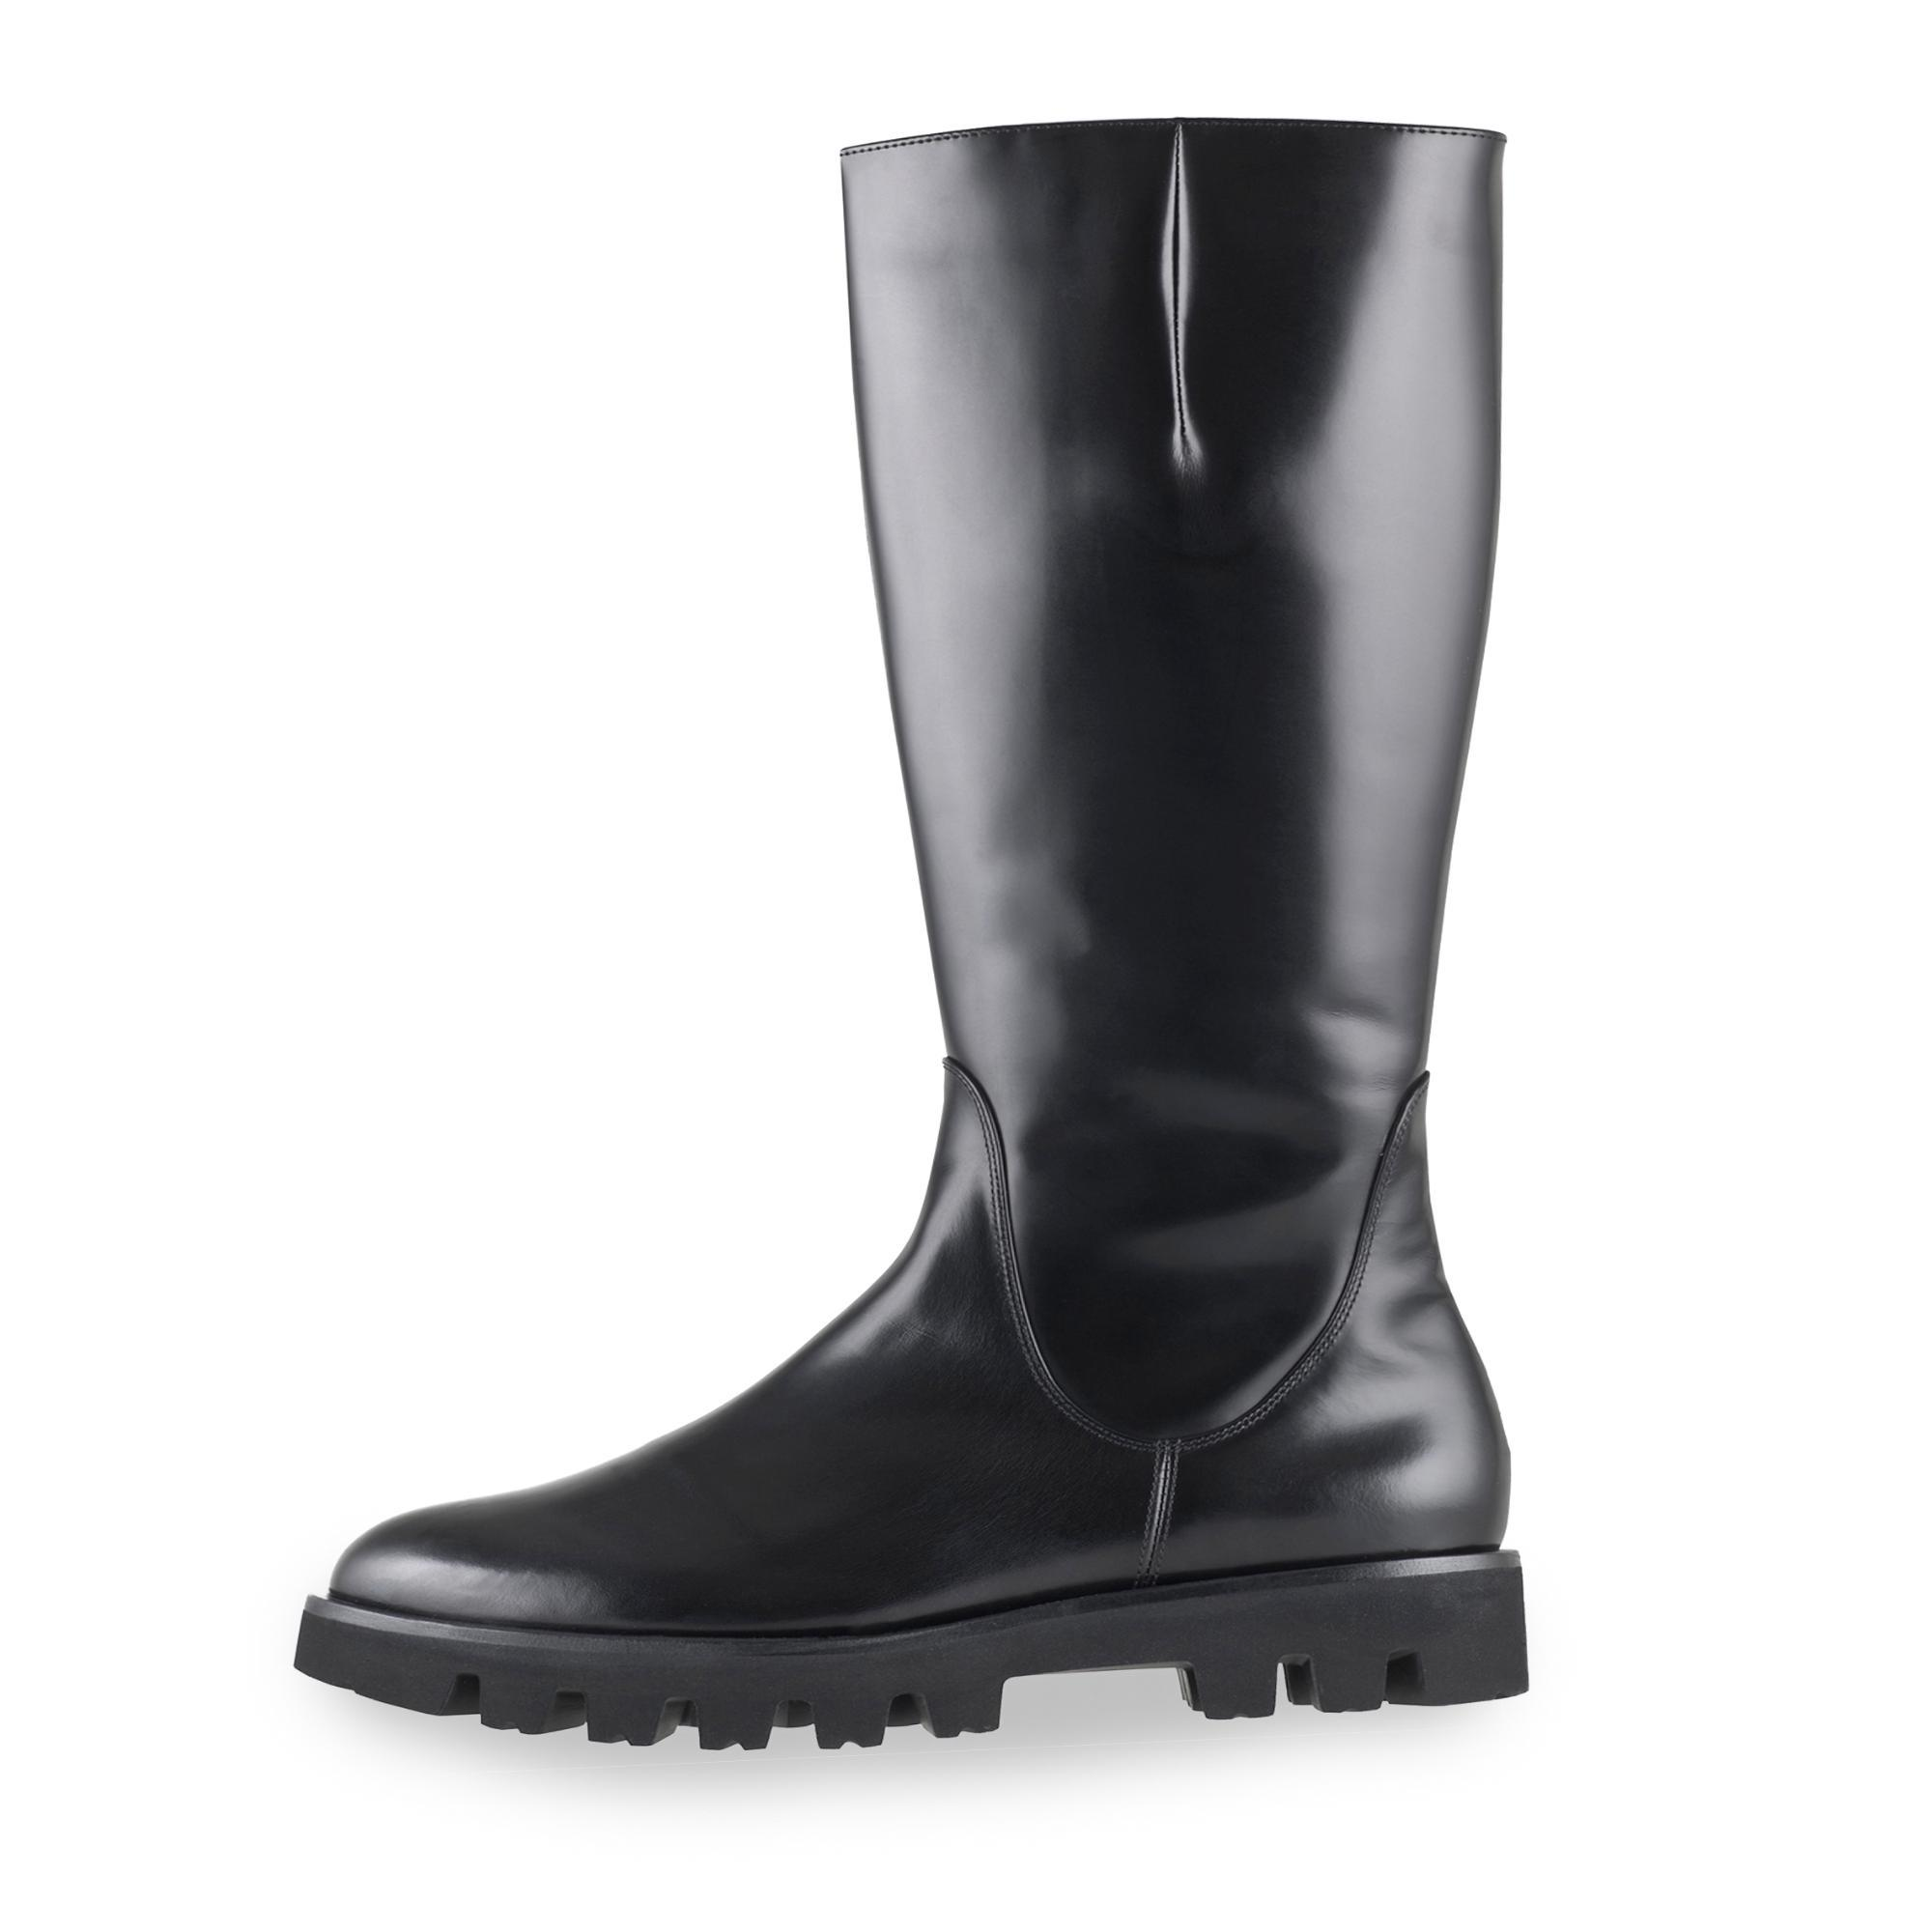 finest selection eee00 75620 Högl Stiefel